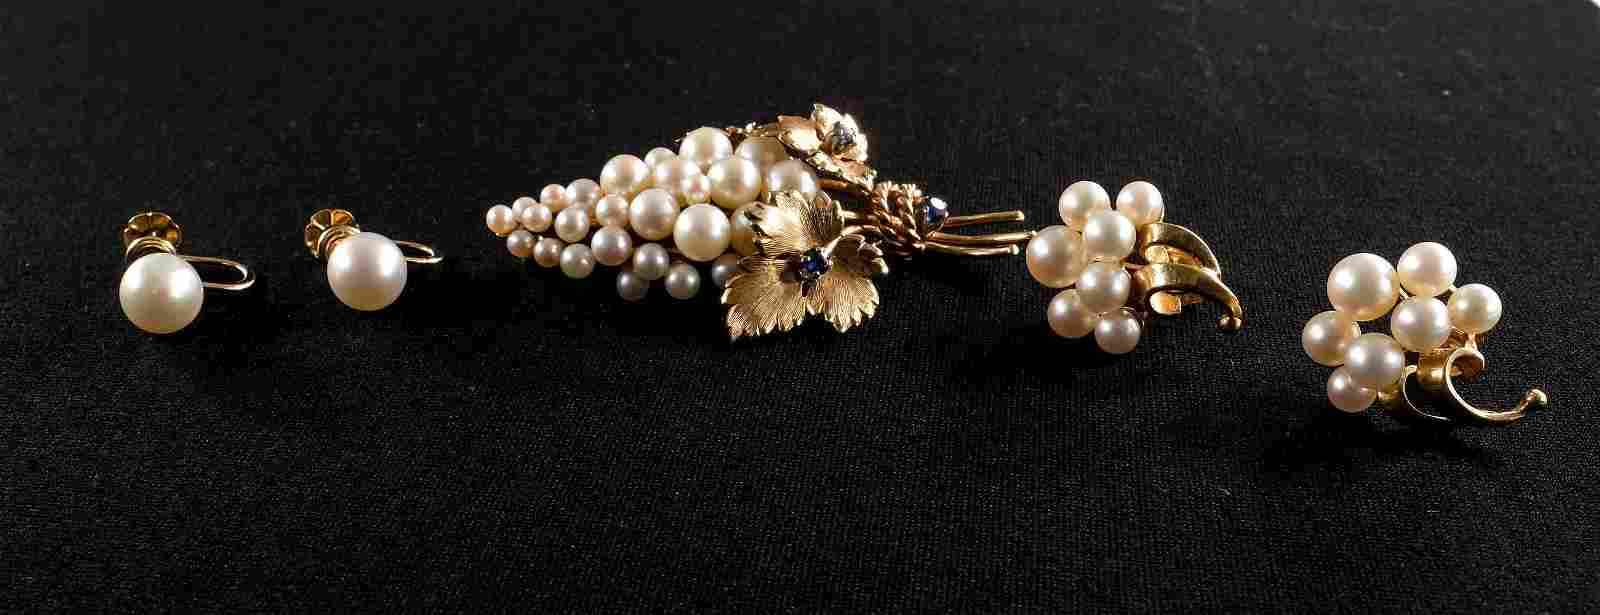 14K Gold and Pearl Jewelry Group